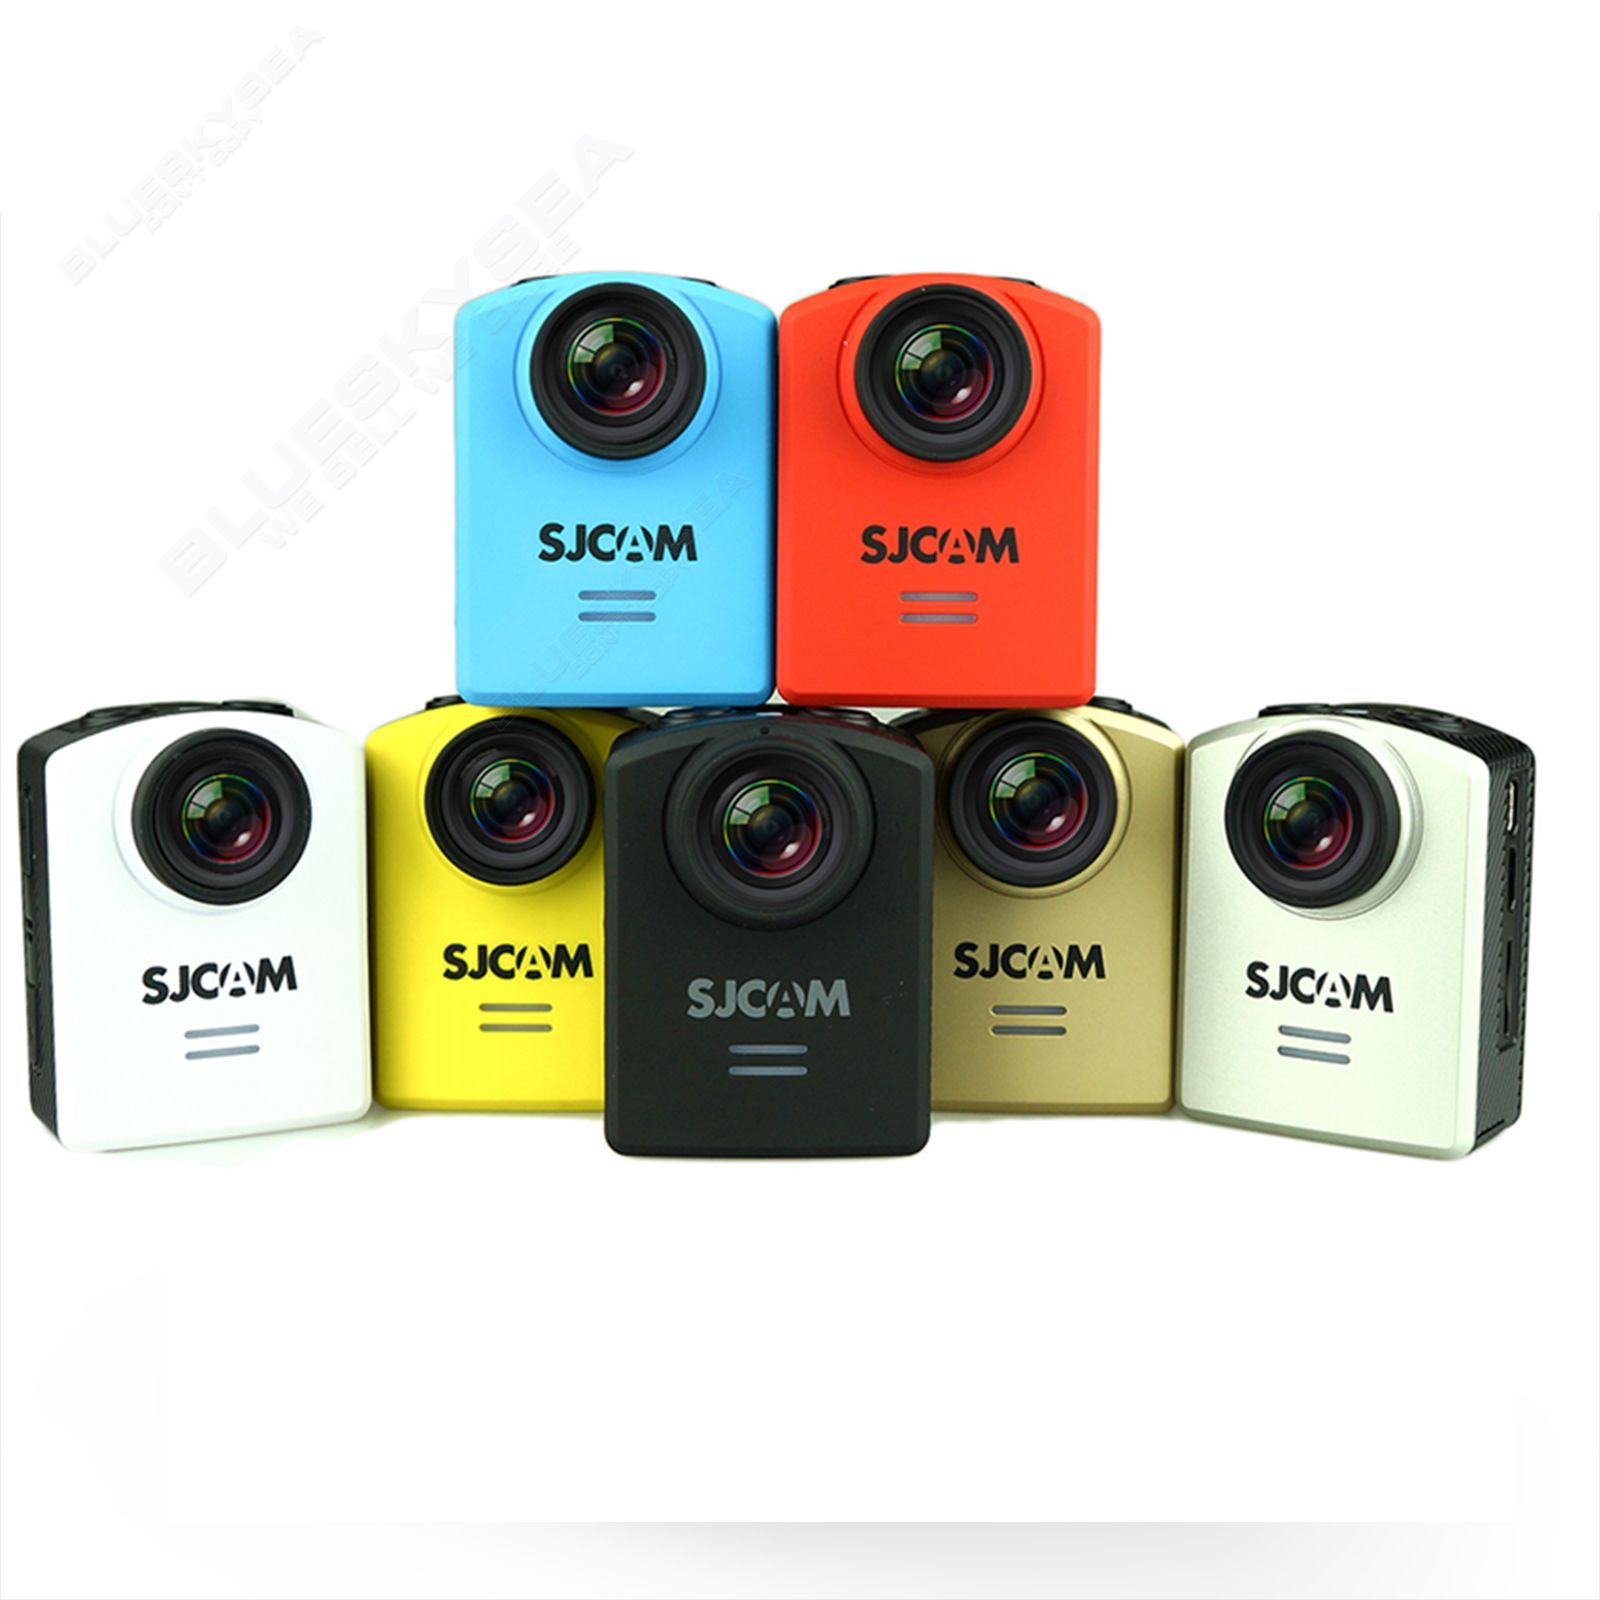 SJCAM M K HD P MP WIireless Action Camera Waterproof WiFi Police